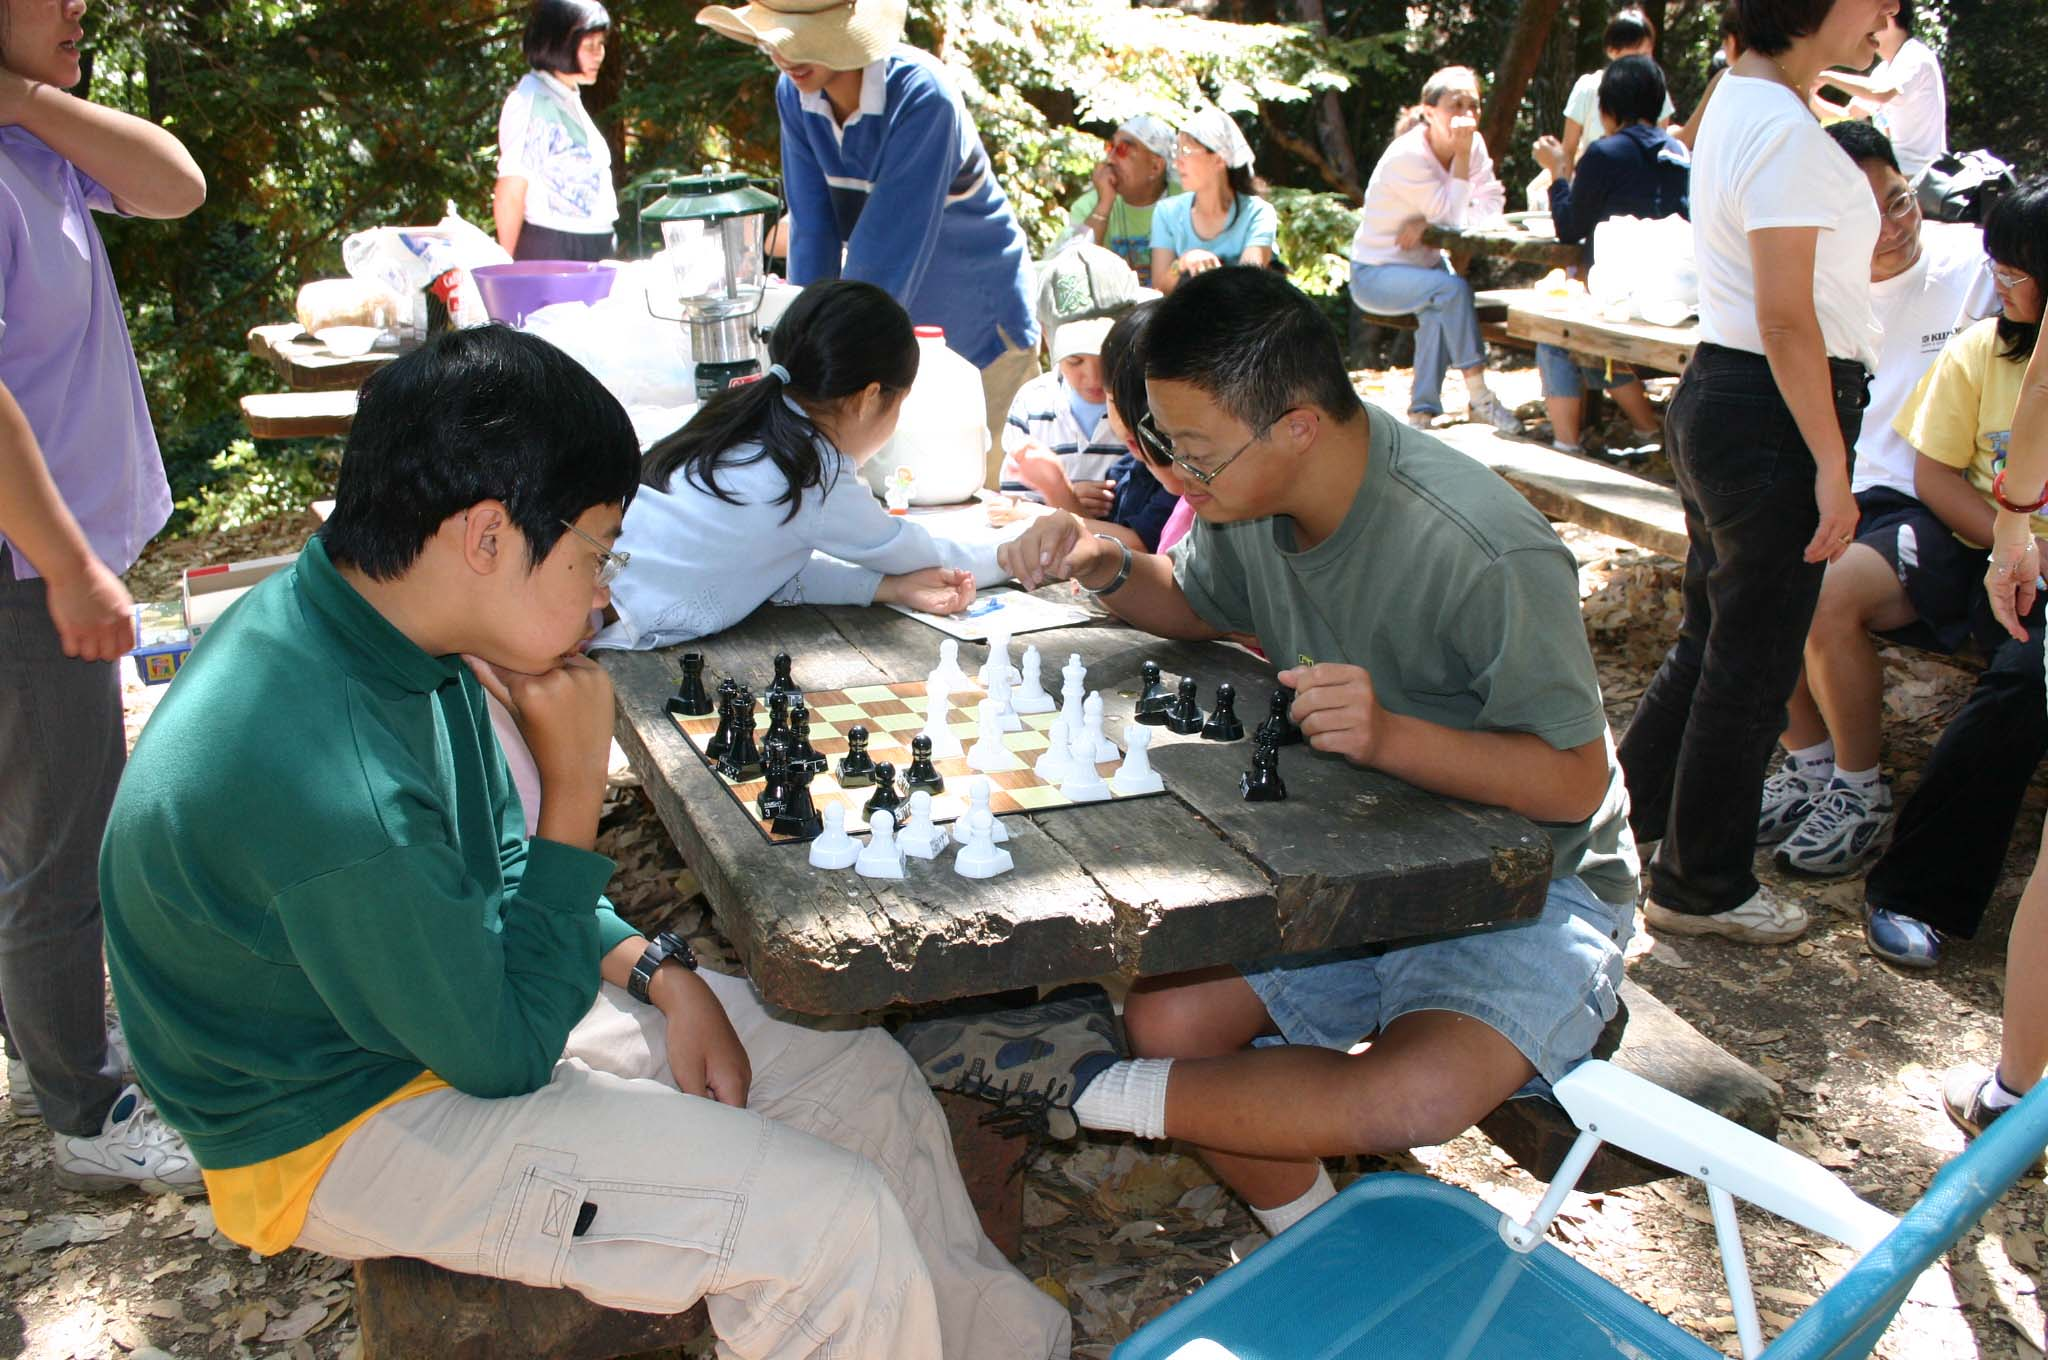 From Fcsn >> Asian American Youth With Special Needs Struggle To Gain More